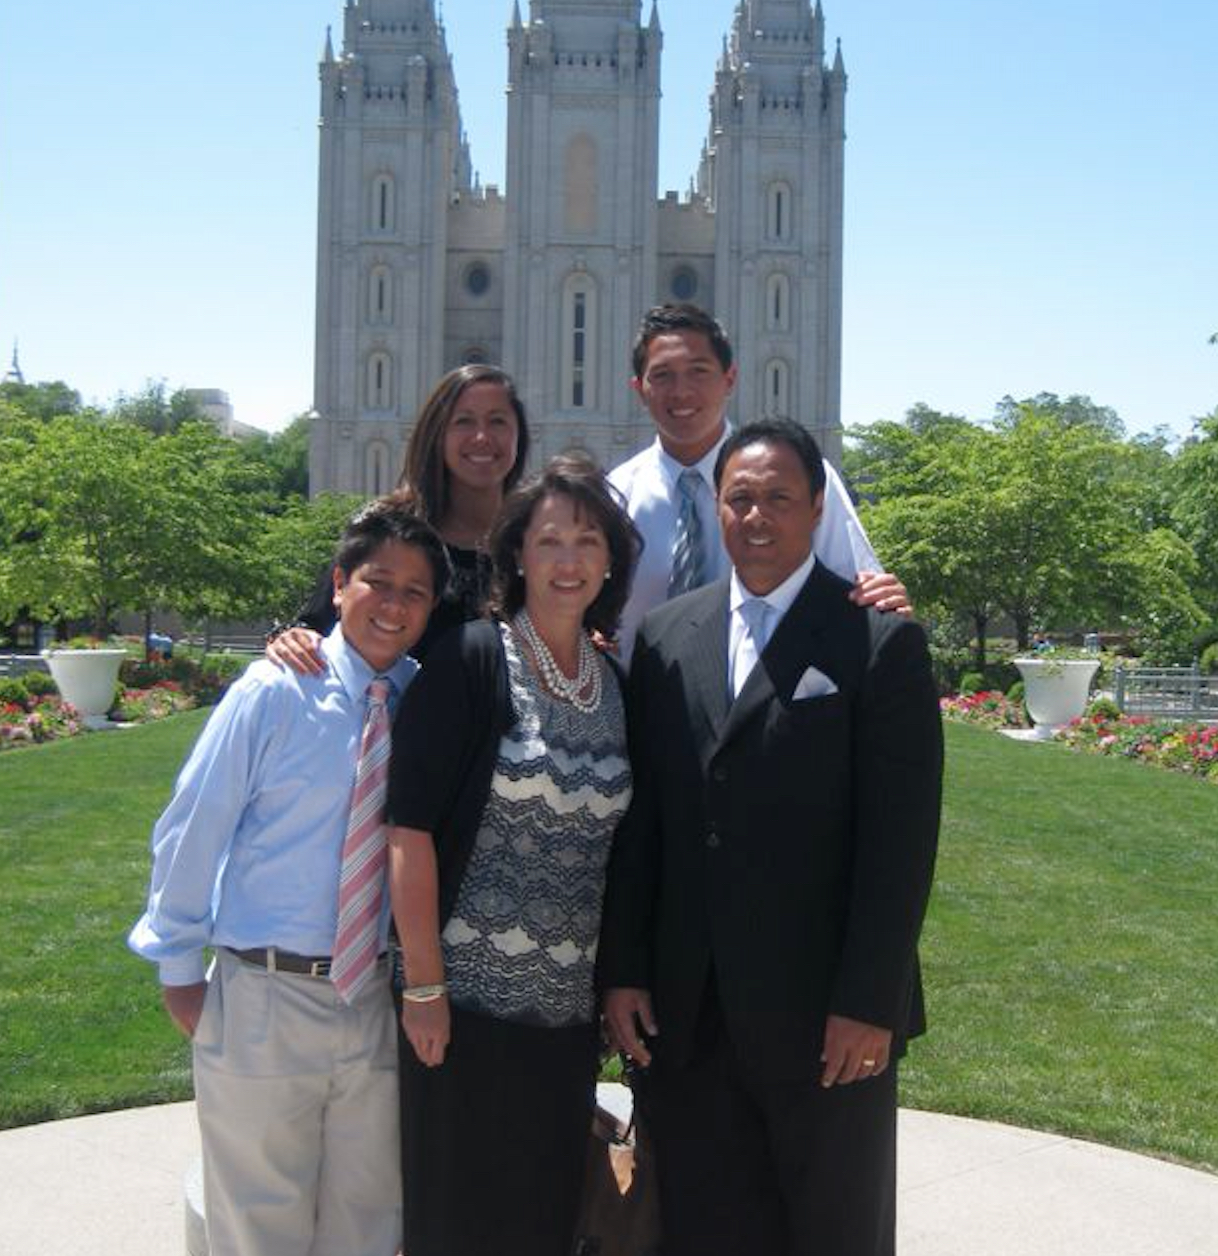 The Ken and Barbara Niumatalolo family at Temple Square in Salt Lake City.